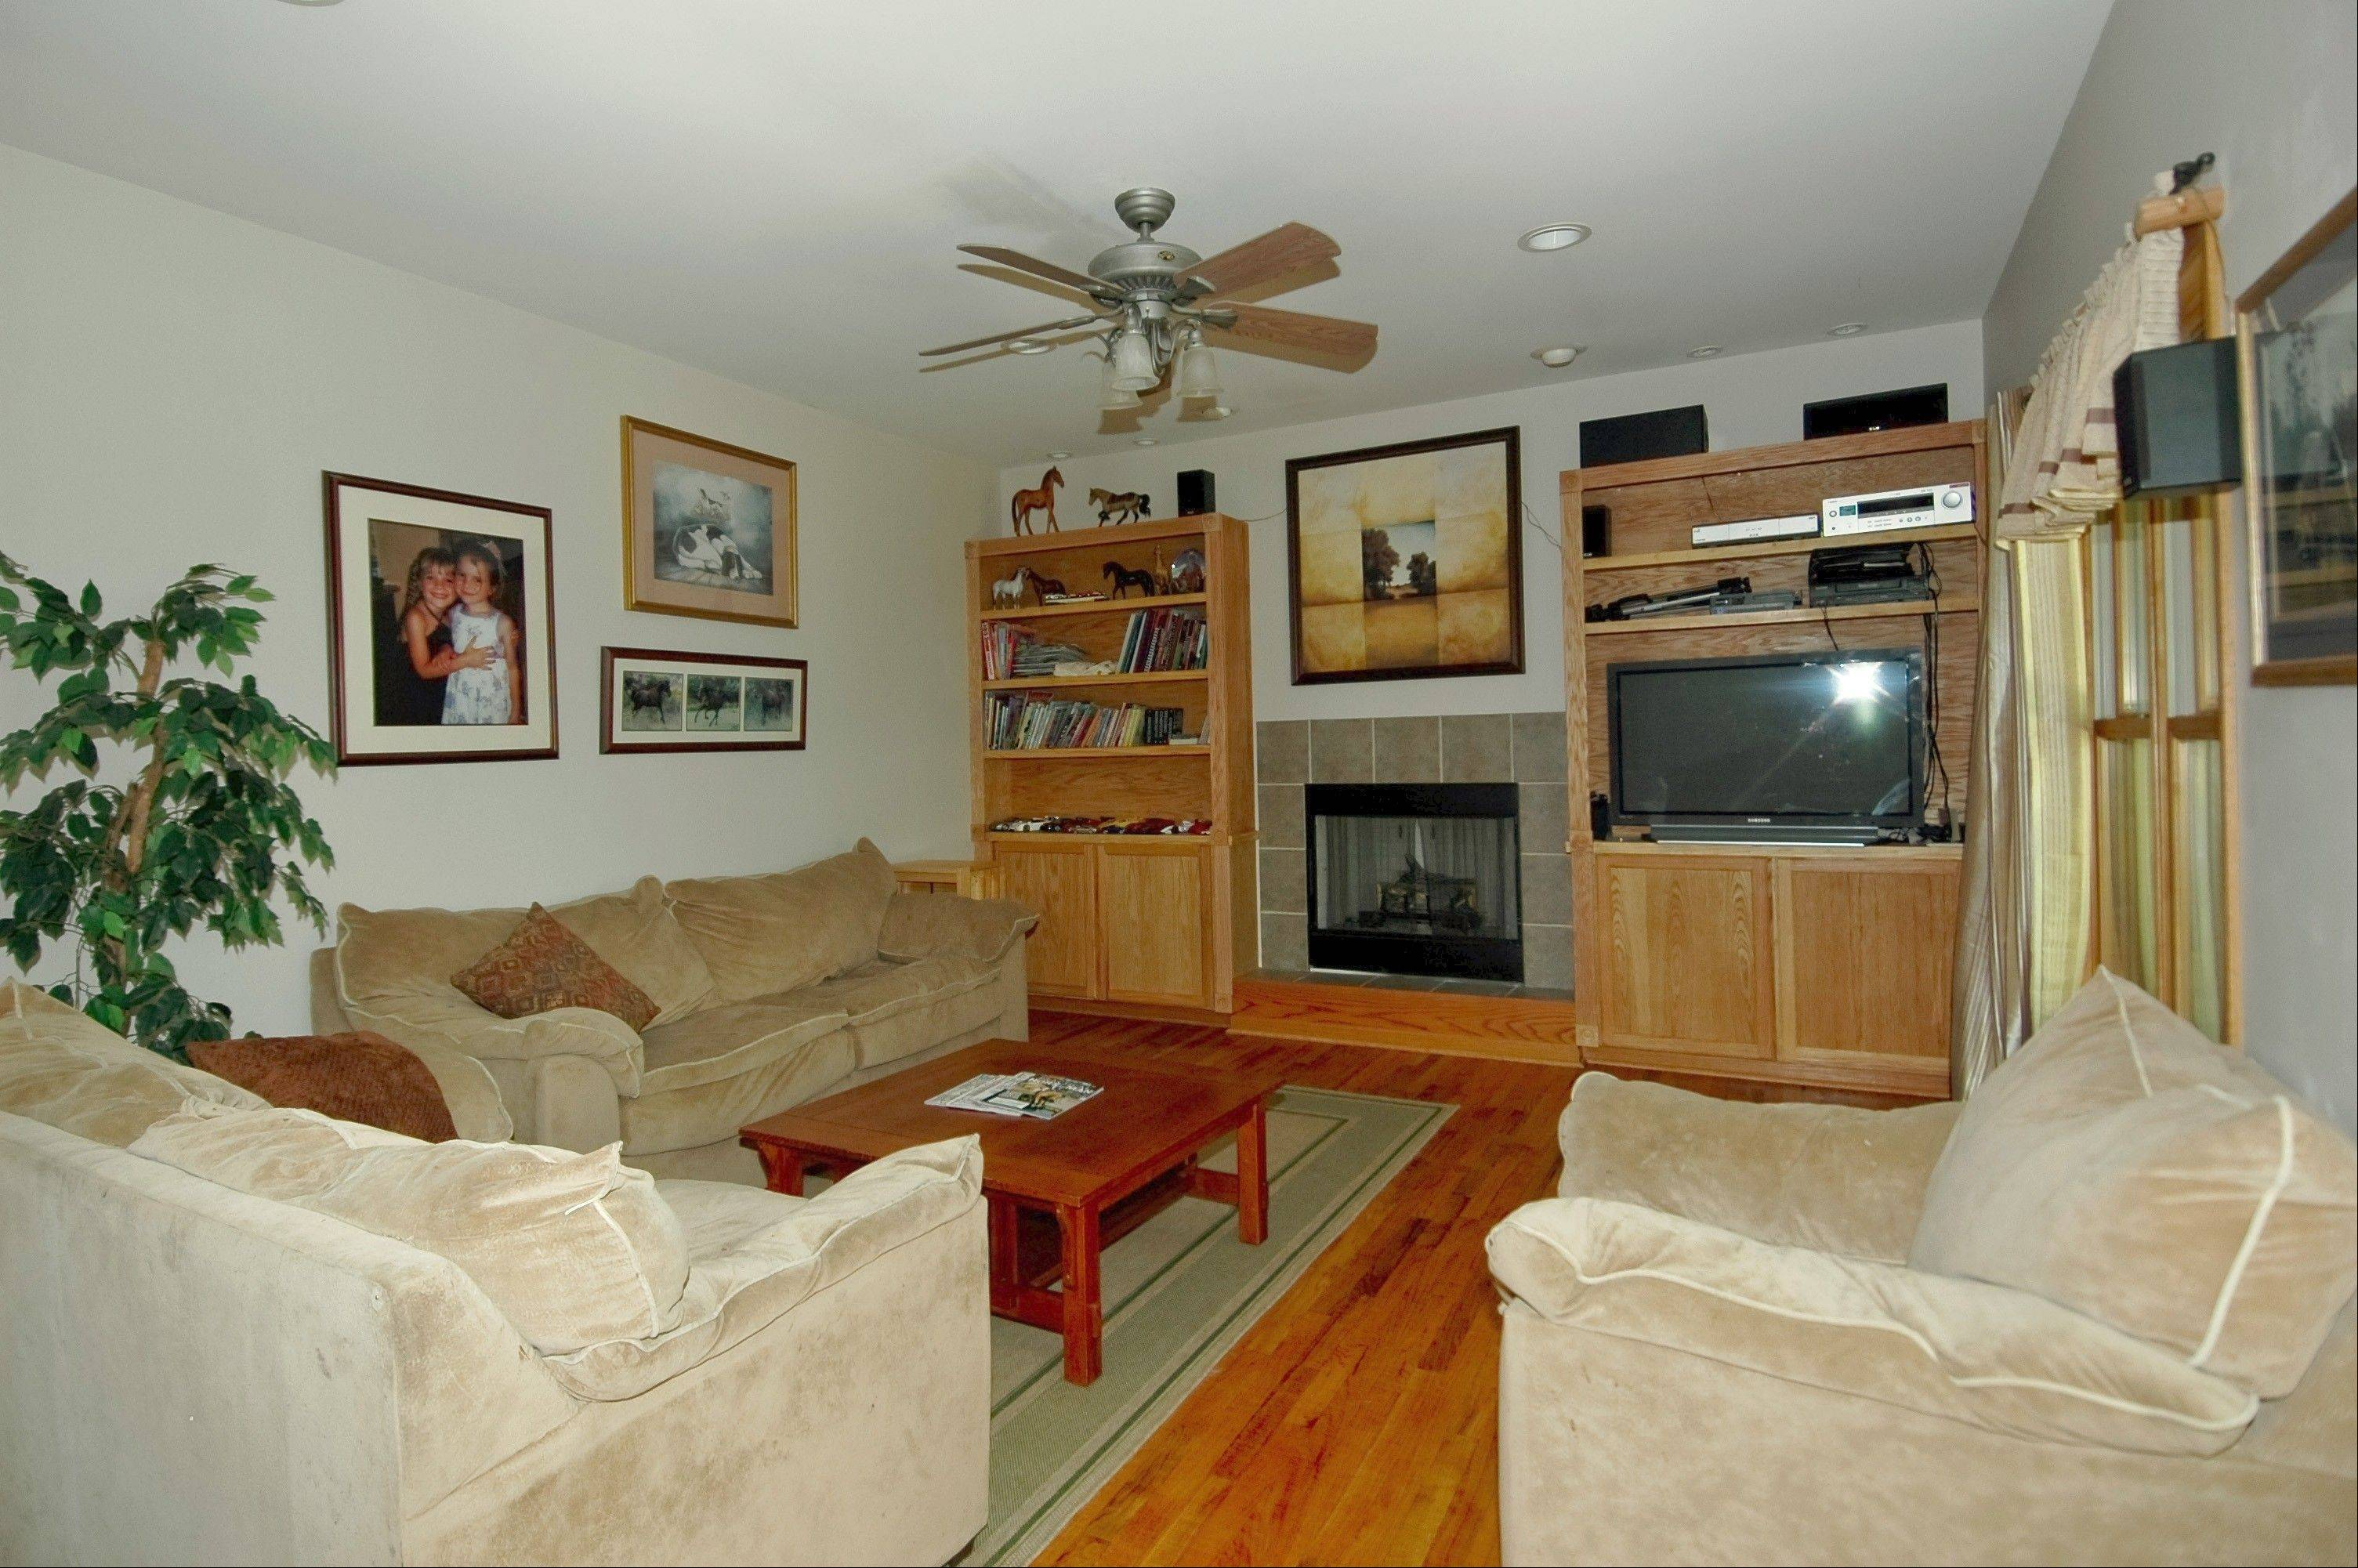 There are hardwood floors and a gas fireplace in the first-floor family room.